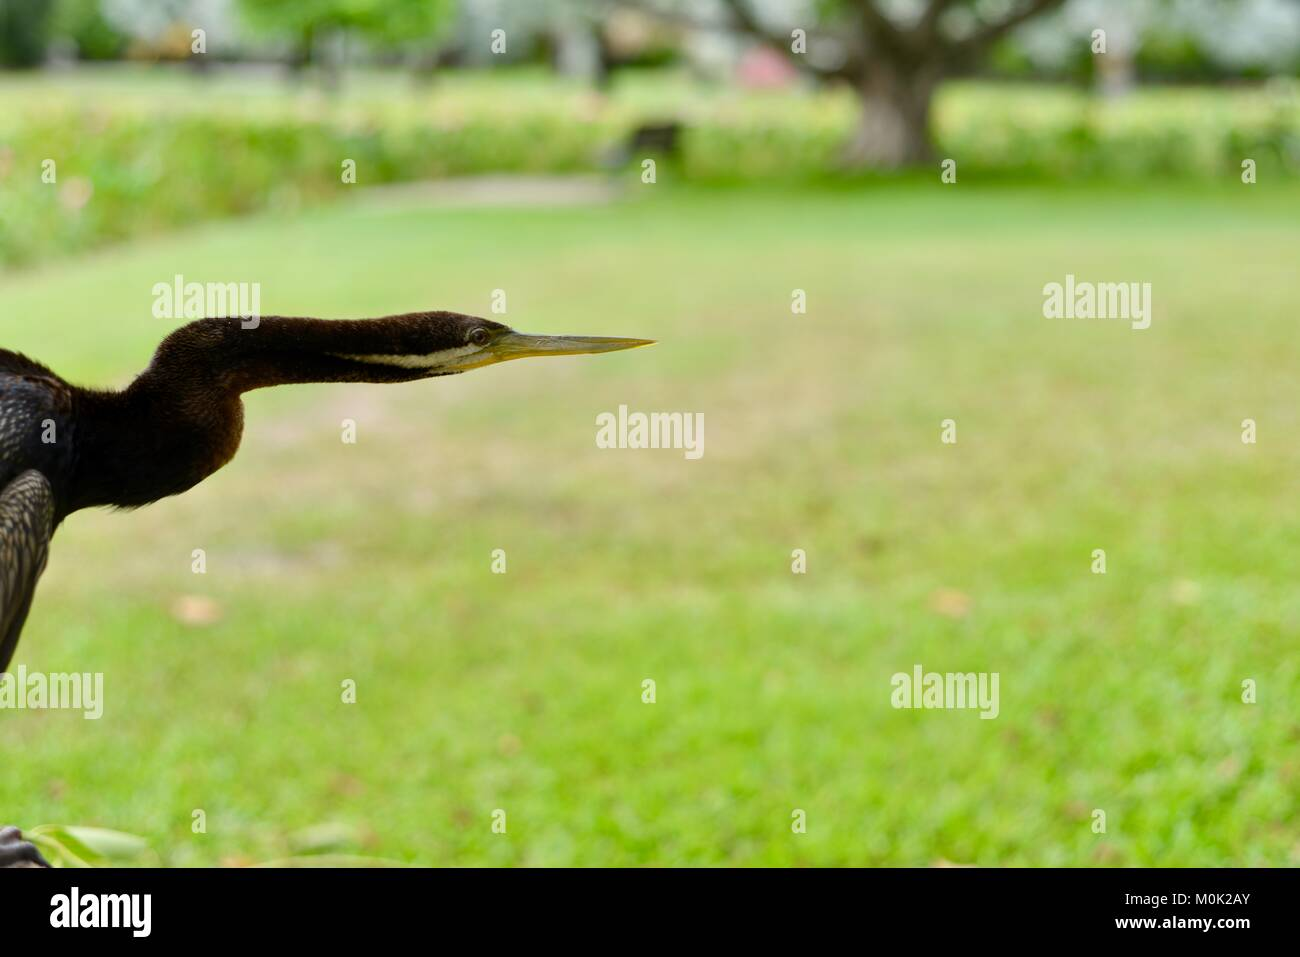 Close up images of an Australasian darter Anhinga melanogaster, Anderson Park Botanic Gardens, Townsville, Queensland, Stock Photo